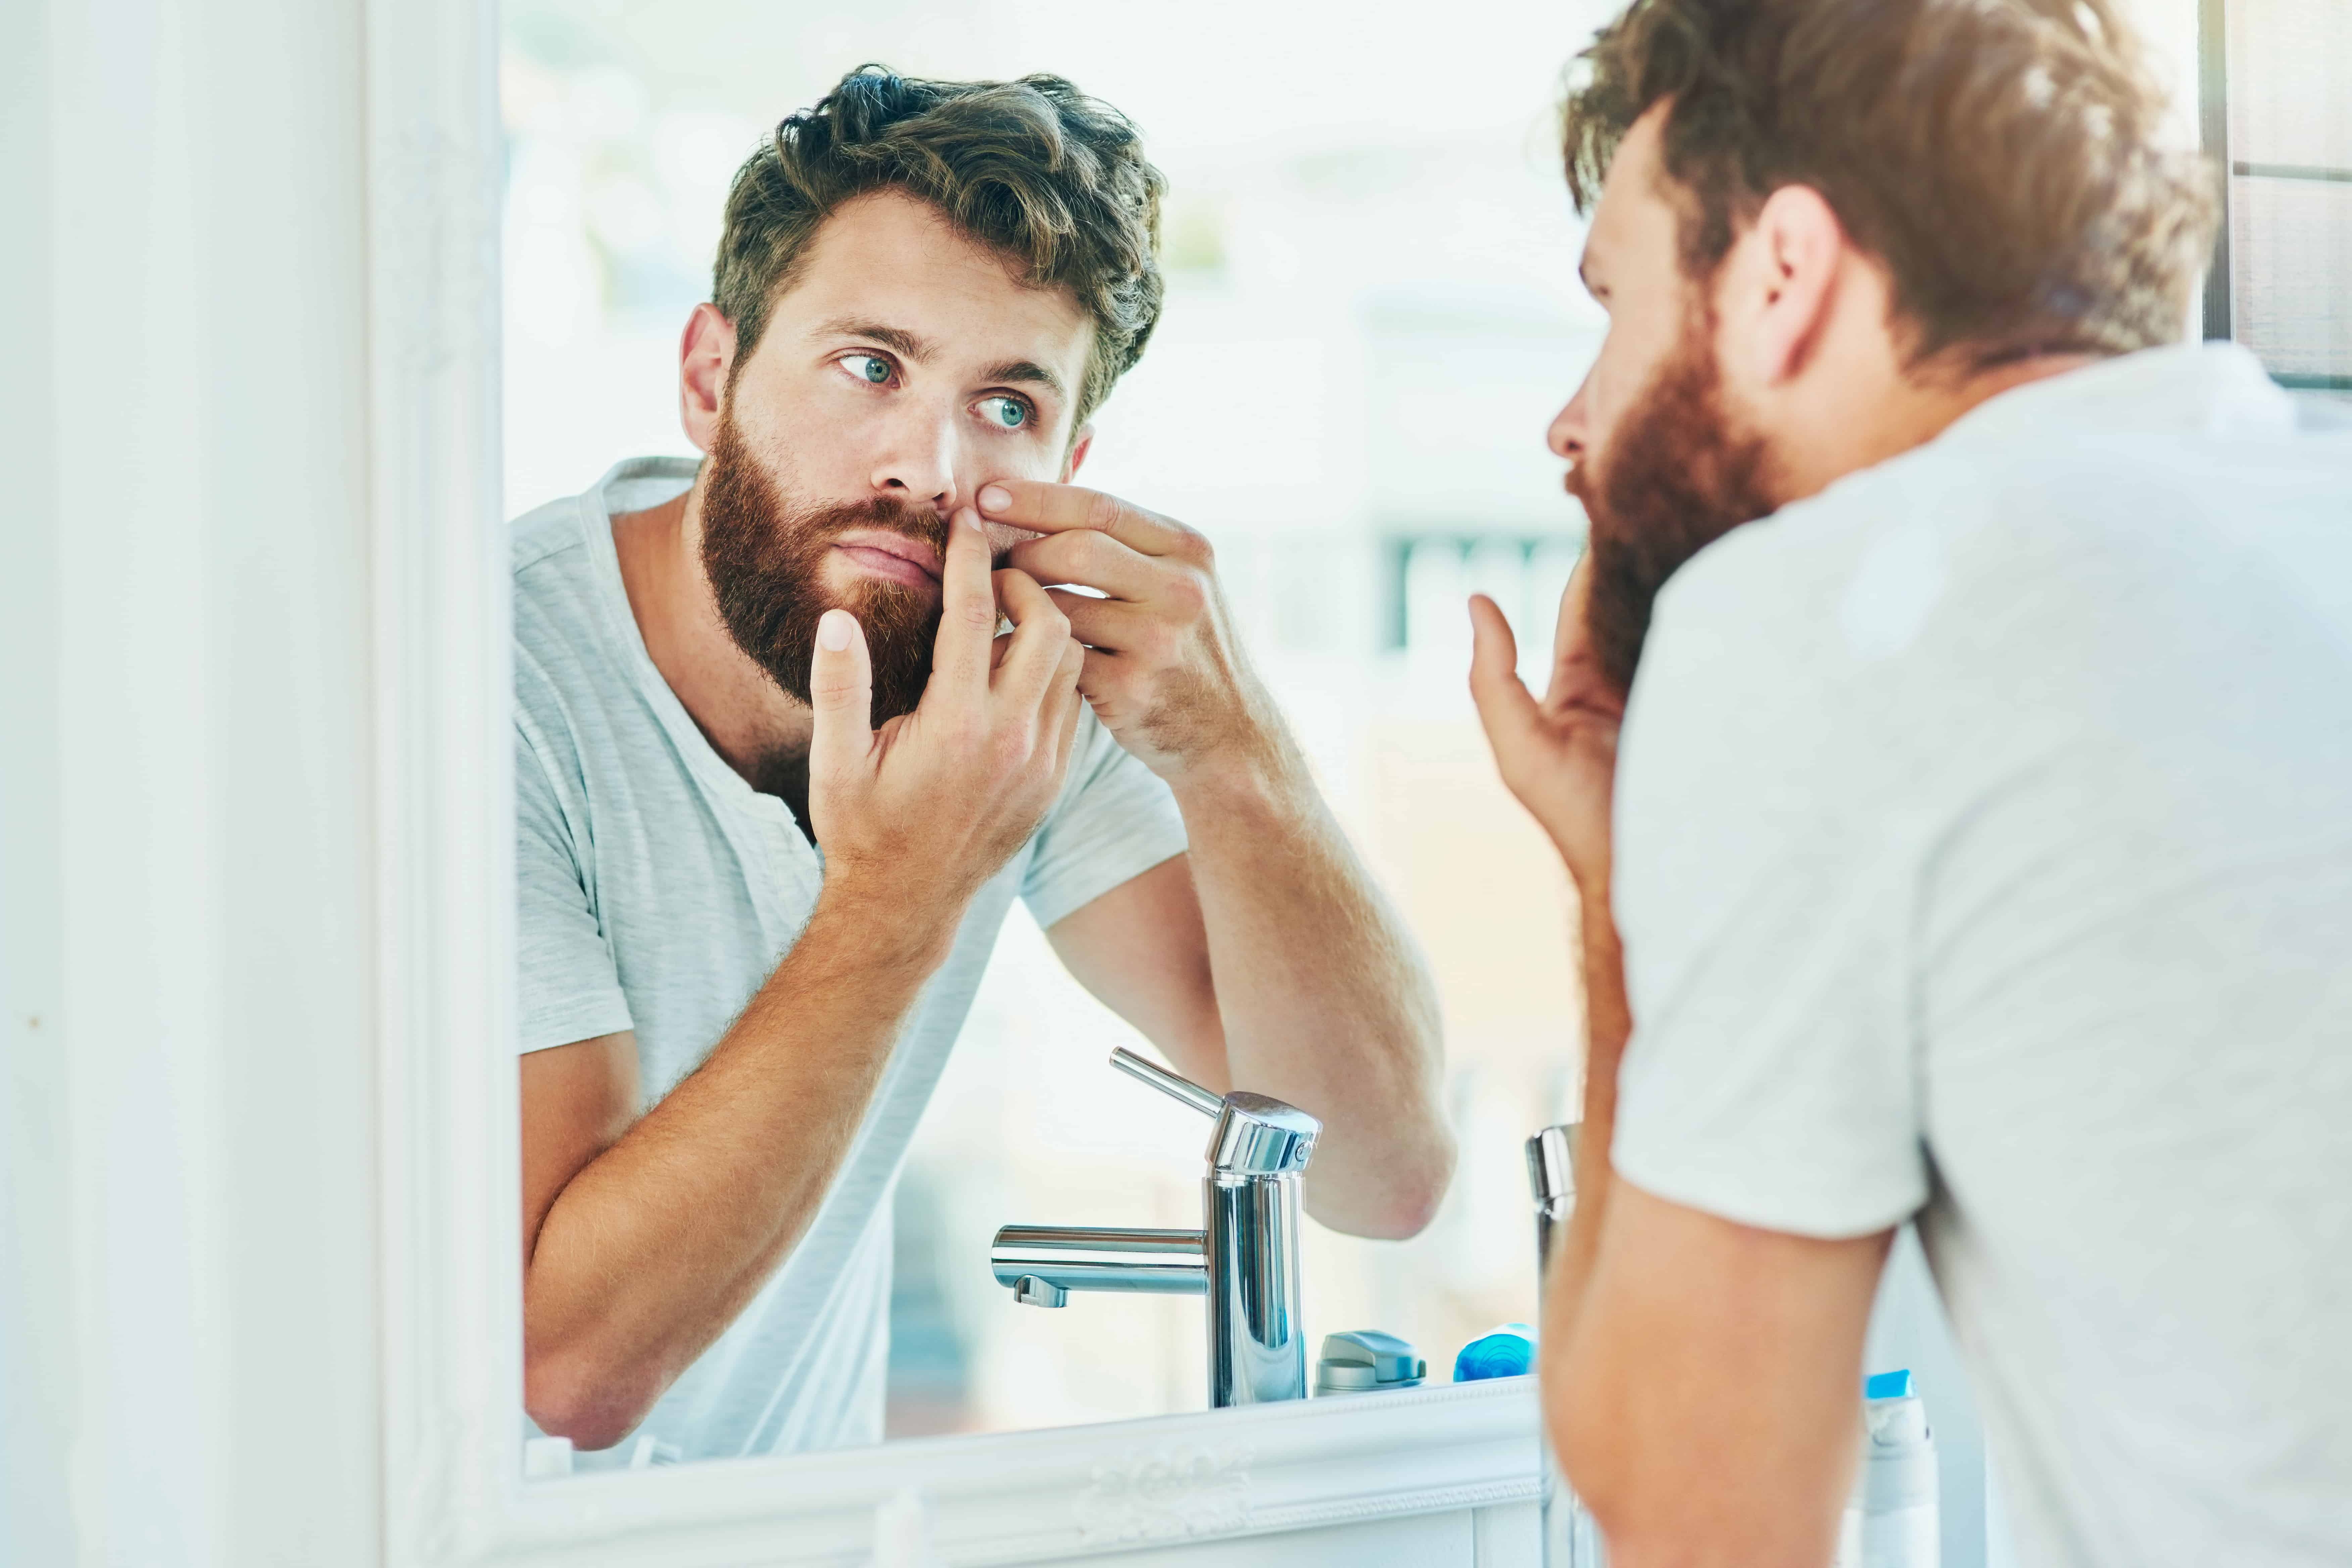 Man popping pimples in the mirror